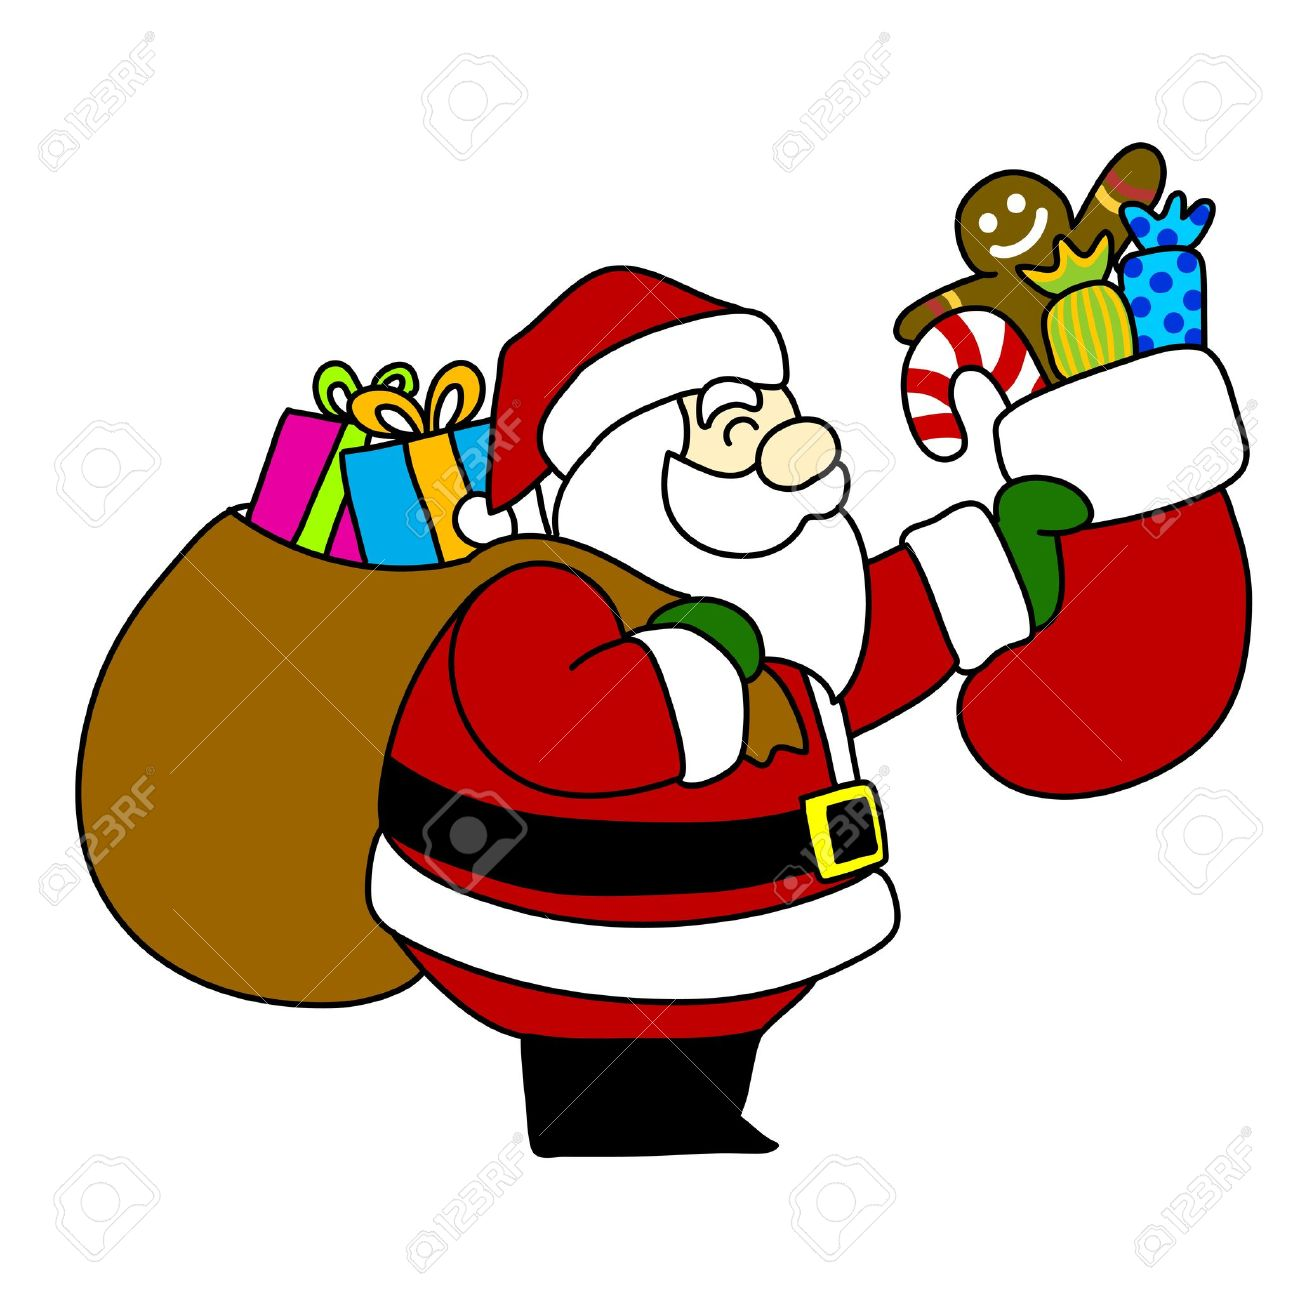 saint nicholas stock photos royalty free saint nicholas images